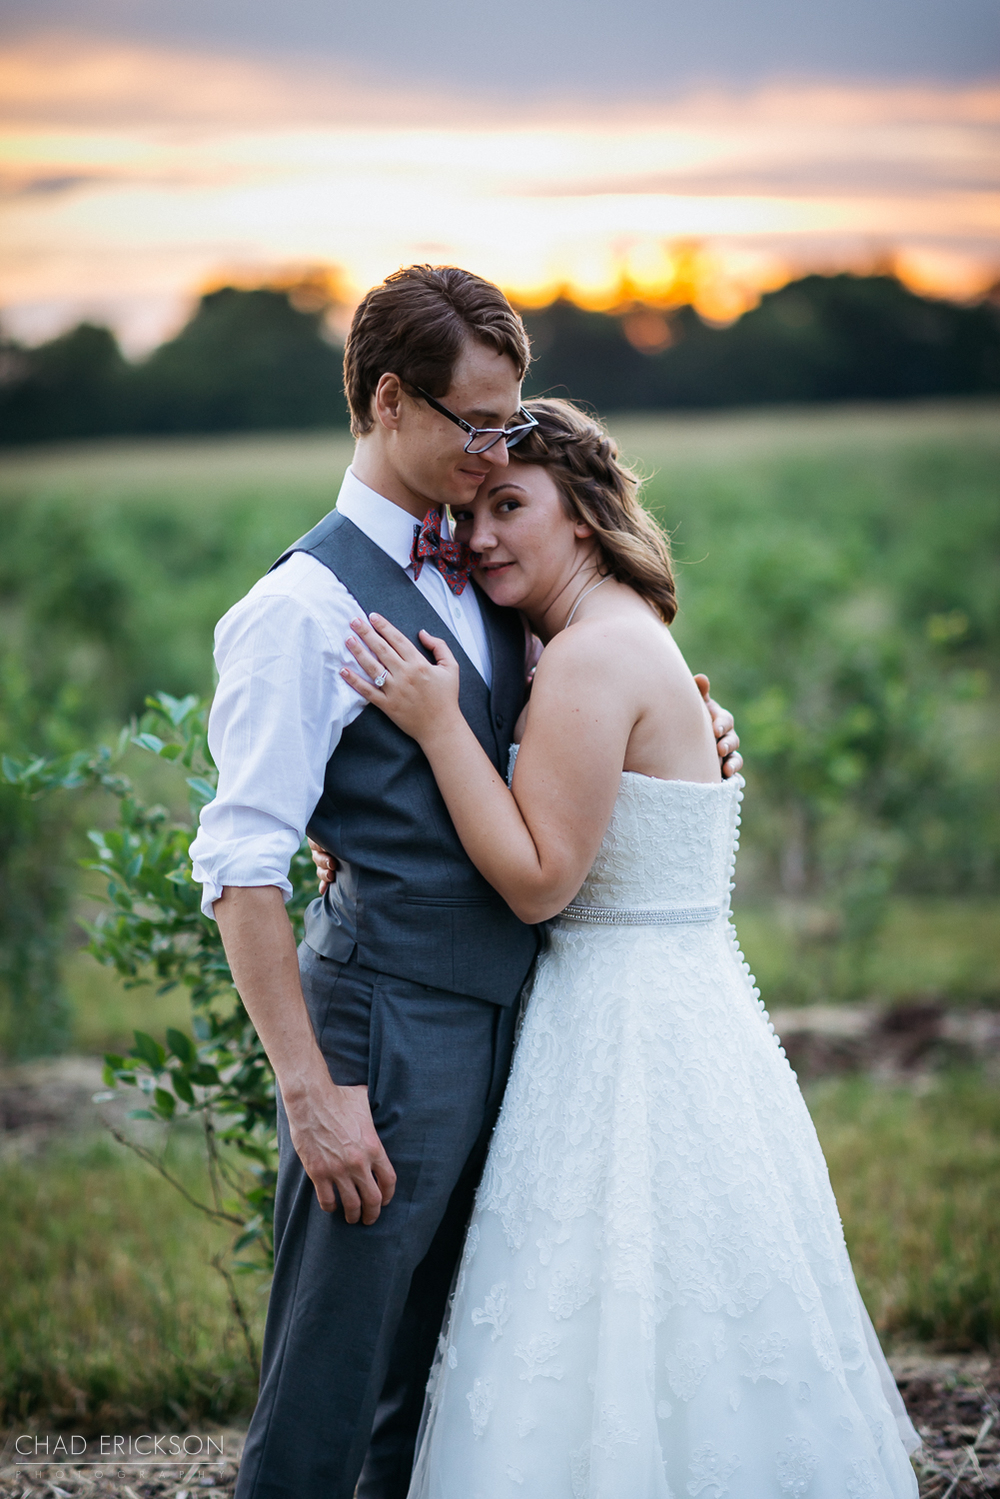 Wedding couple portrait at sunset